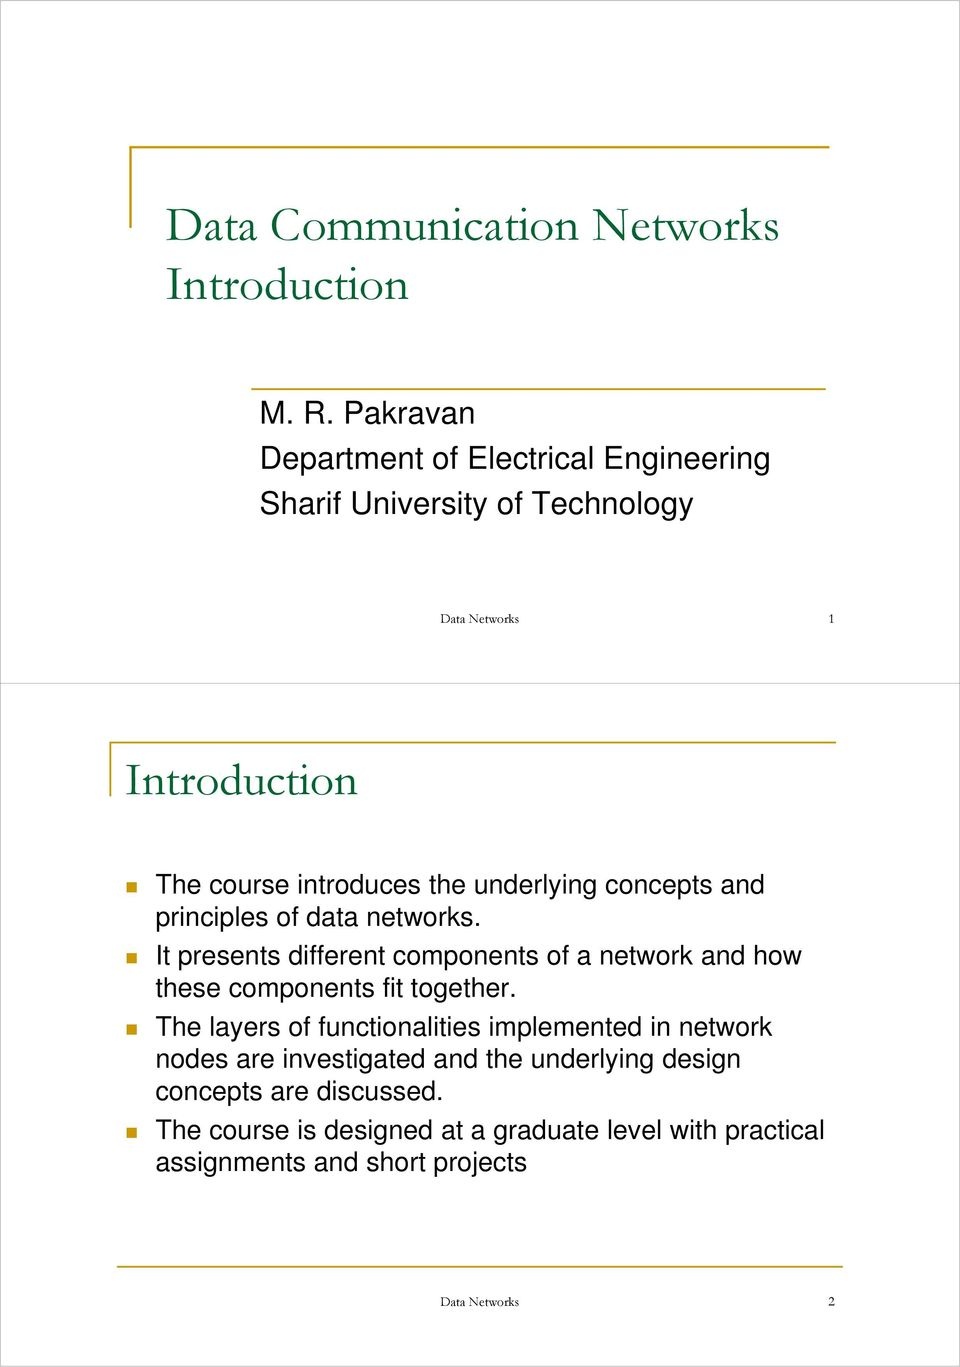 underlying concepts and principles of data networks. It presents different components of a network and how these components fit together.